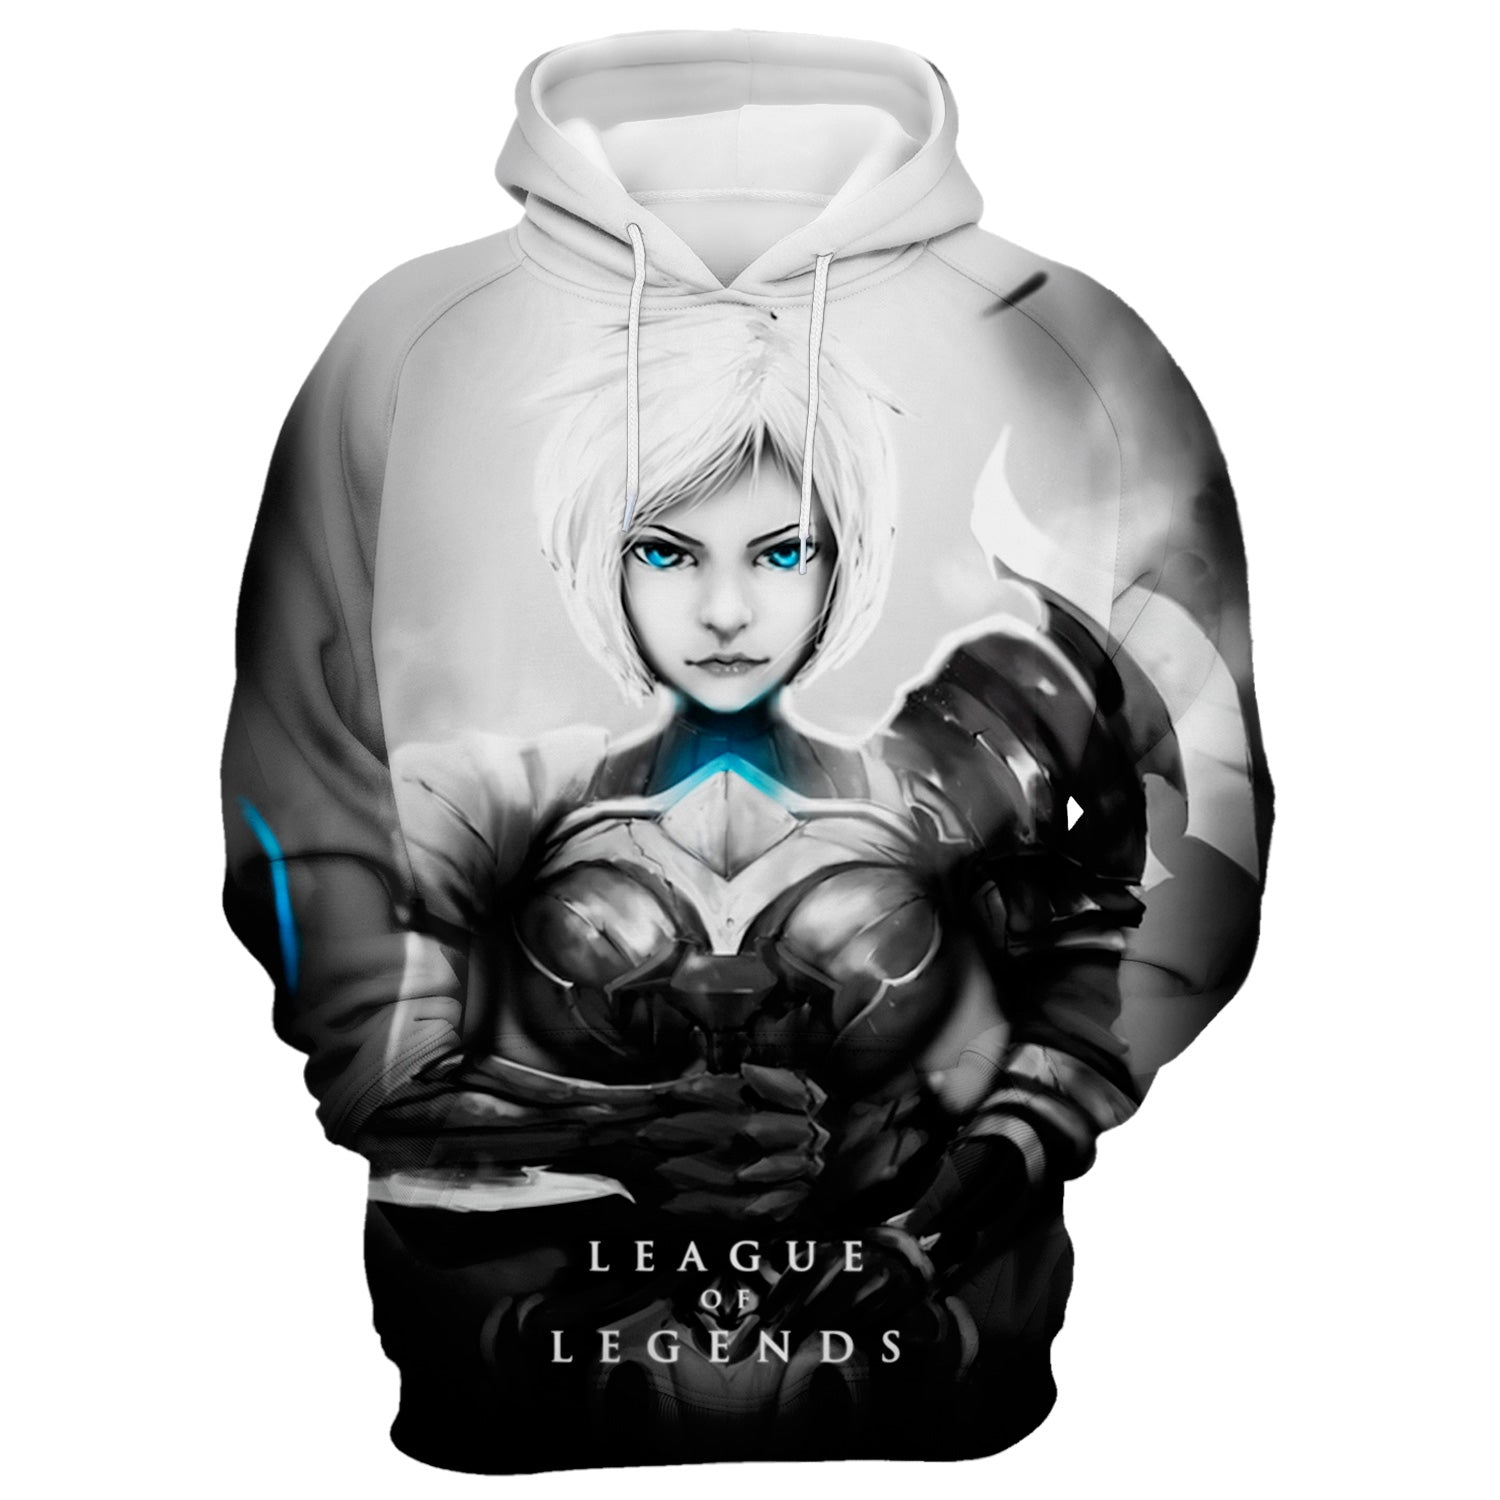 Championship Riven League of Legends 3D Full Printing